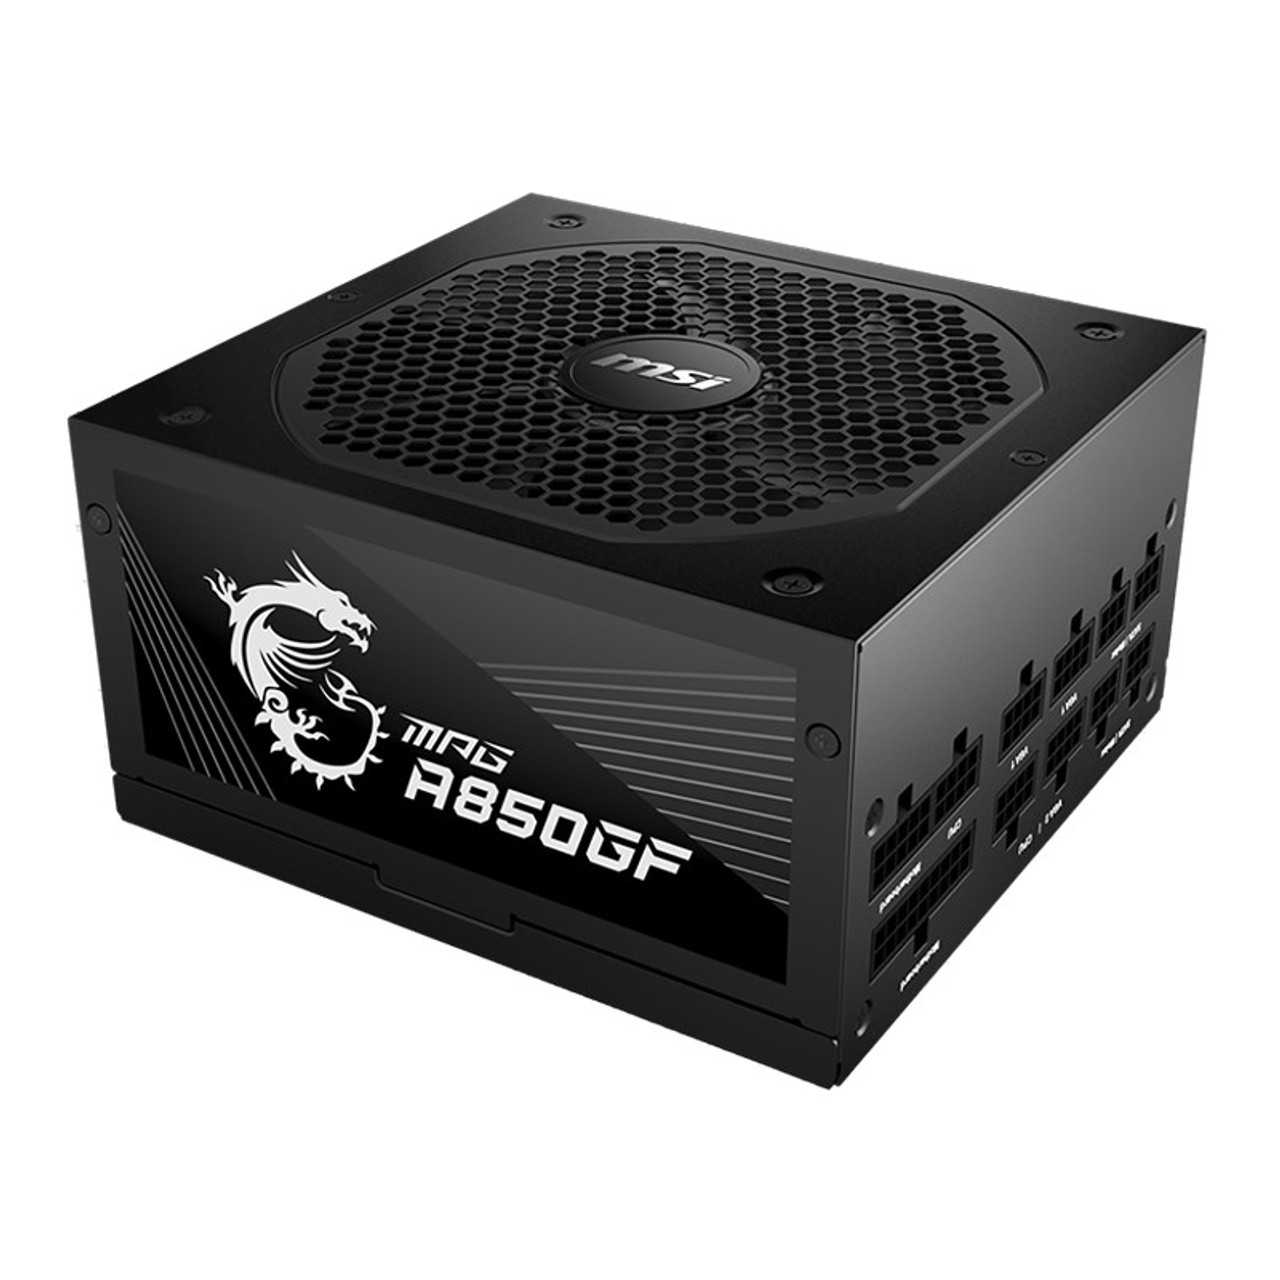 Image for MSI MPG A850GF 850W 80+ Gold Fully Modular ATX Power Supply CX Computer Superstore